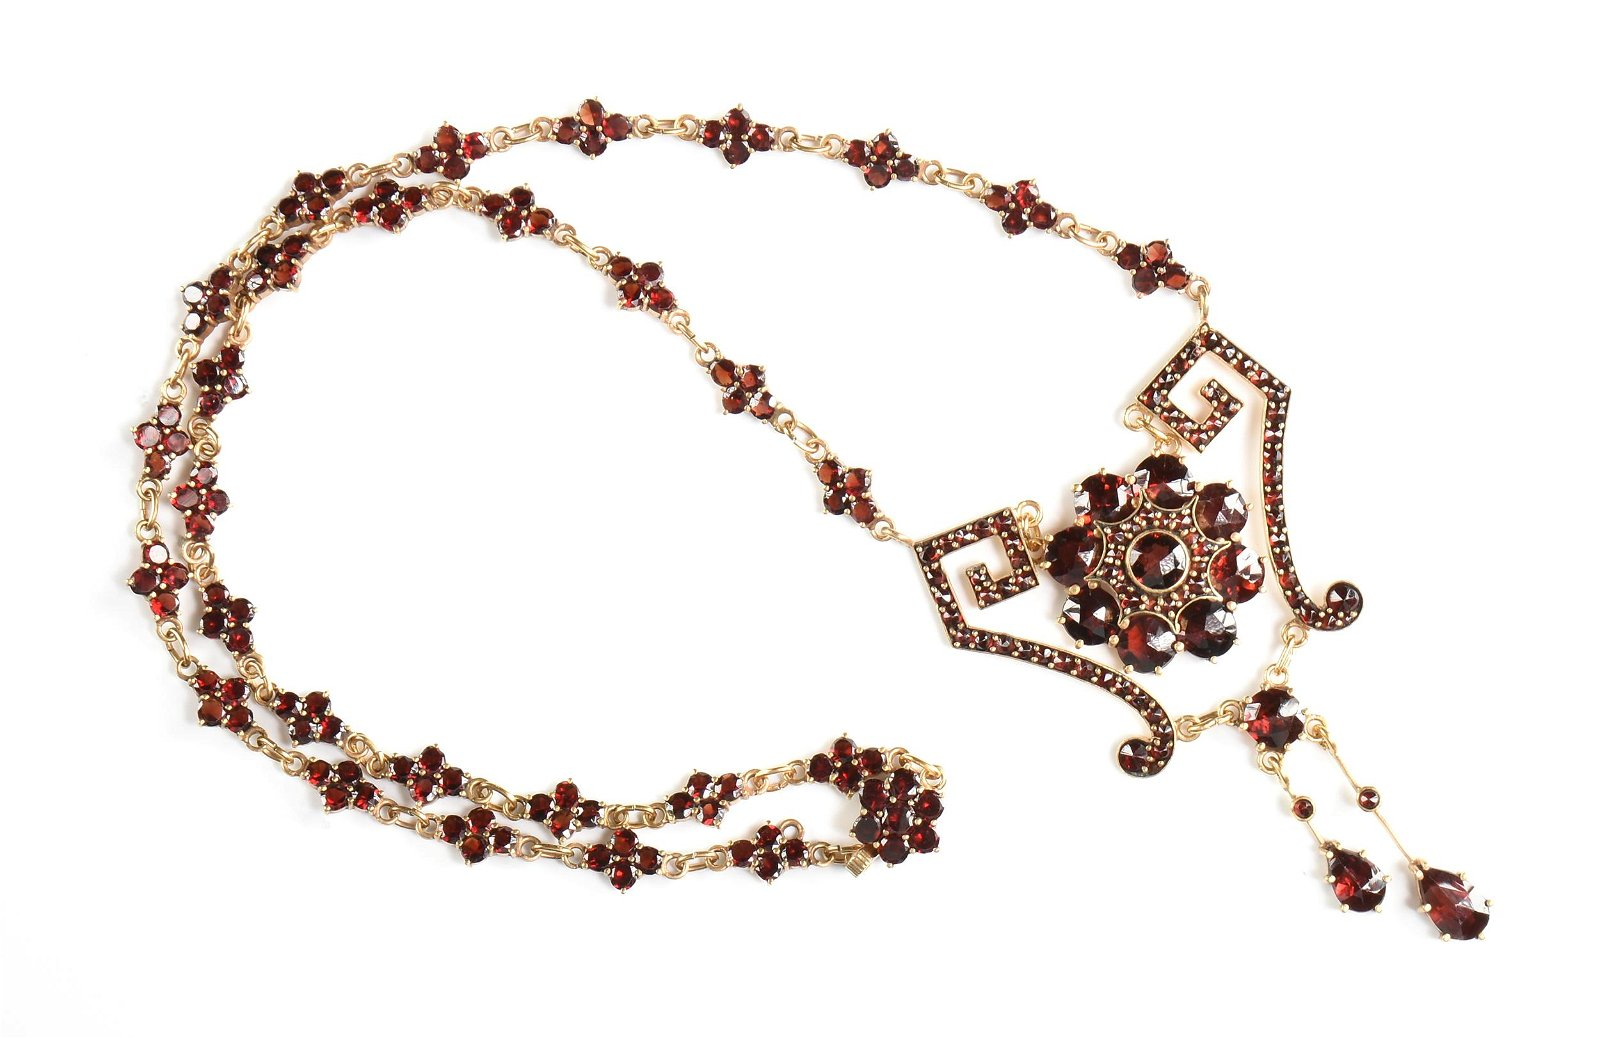 A VICTORIAN STYLE VERMEIL AND GARNET ORNATE NECKLACE,